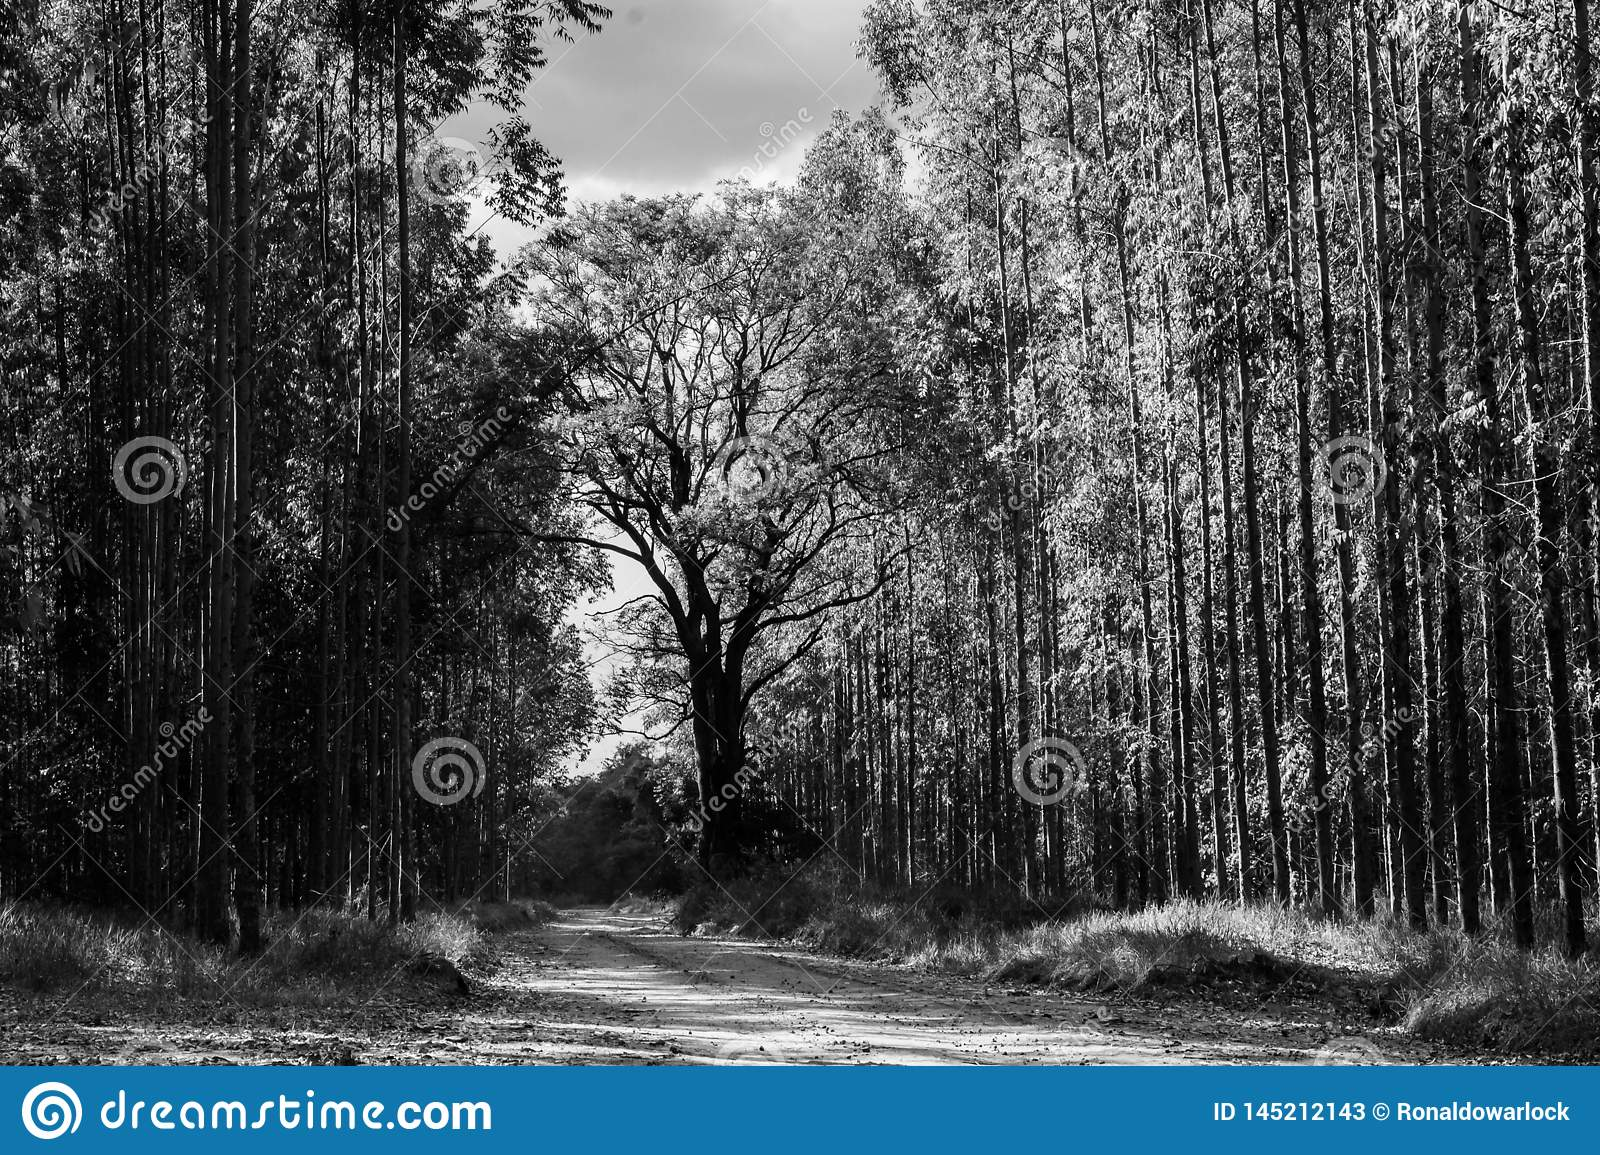 The road to the tree